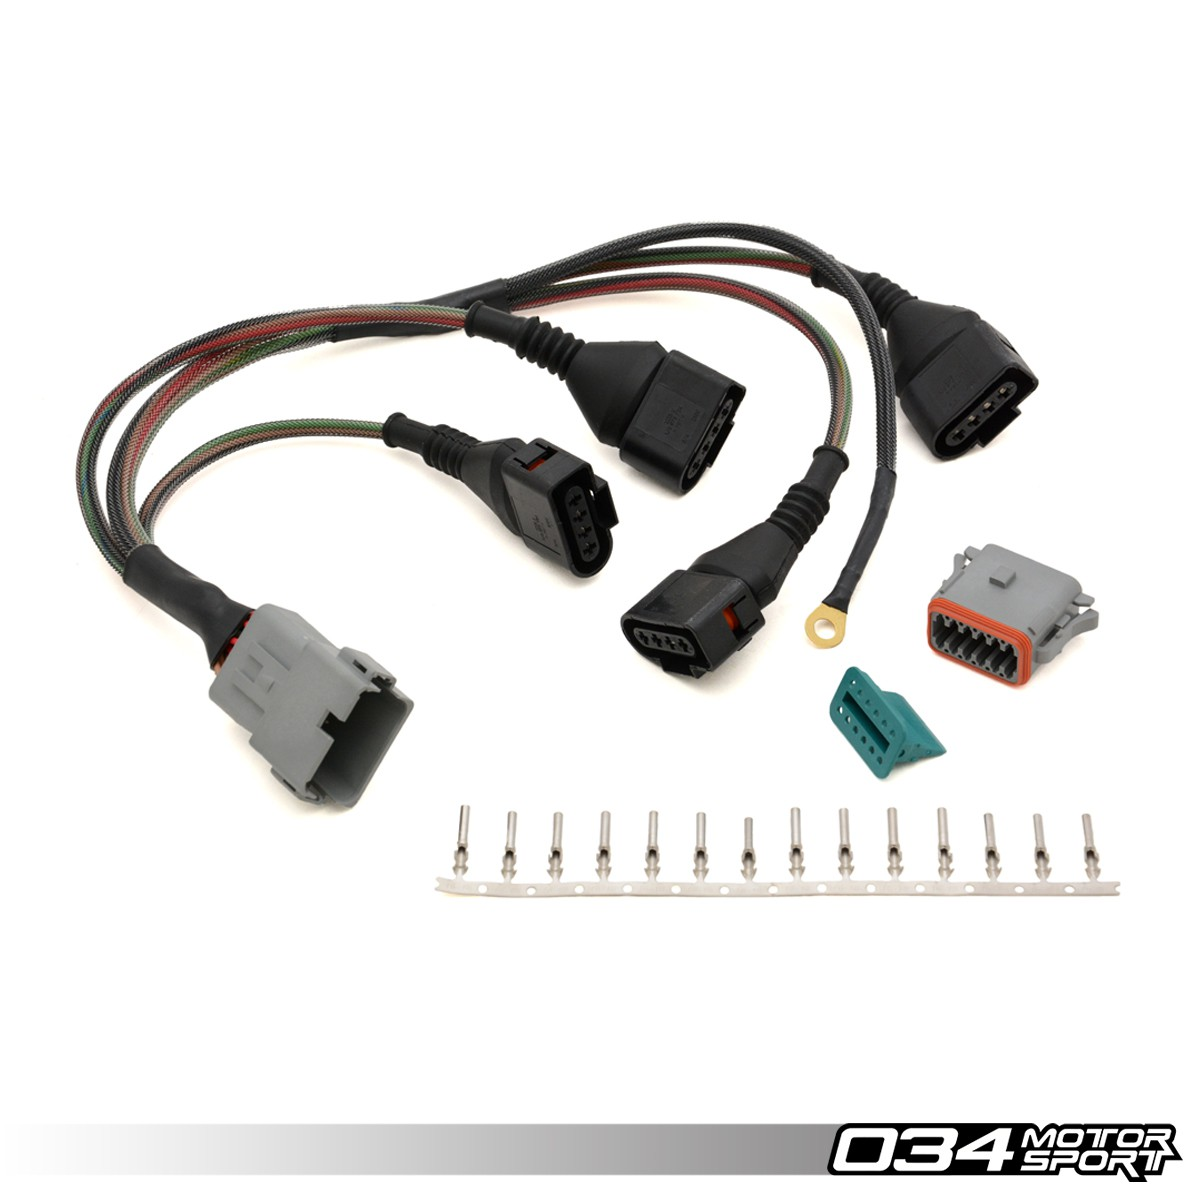 repair update harness audi volkswagen 18t with 4 wire coils 034motorsport 034 701 0004 2 repair update harness, audi volkswagen 1 8t with 4 wire coils ignition coil wiring harness at bayanpartner.co